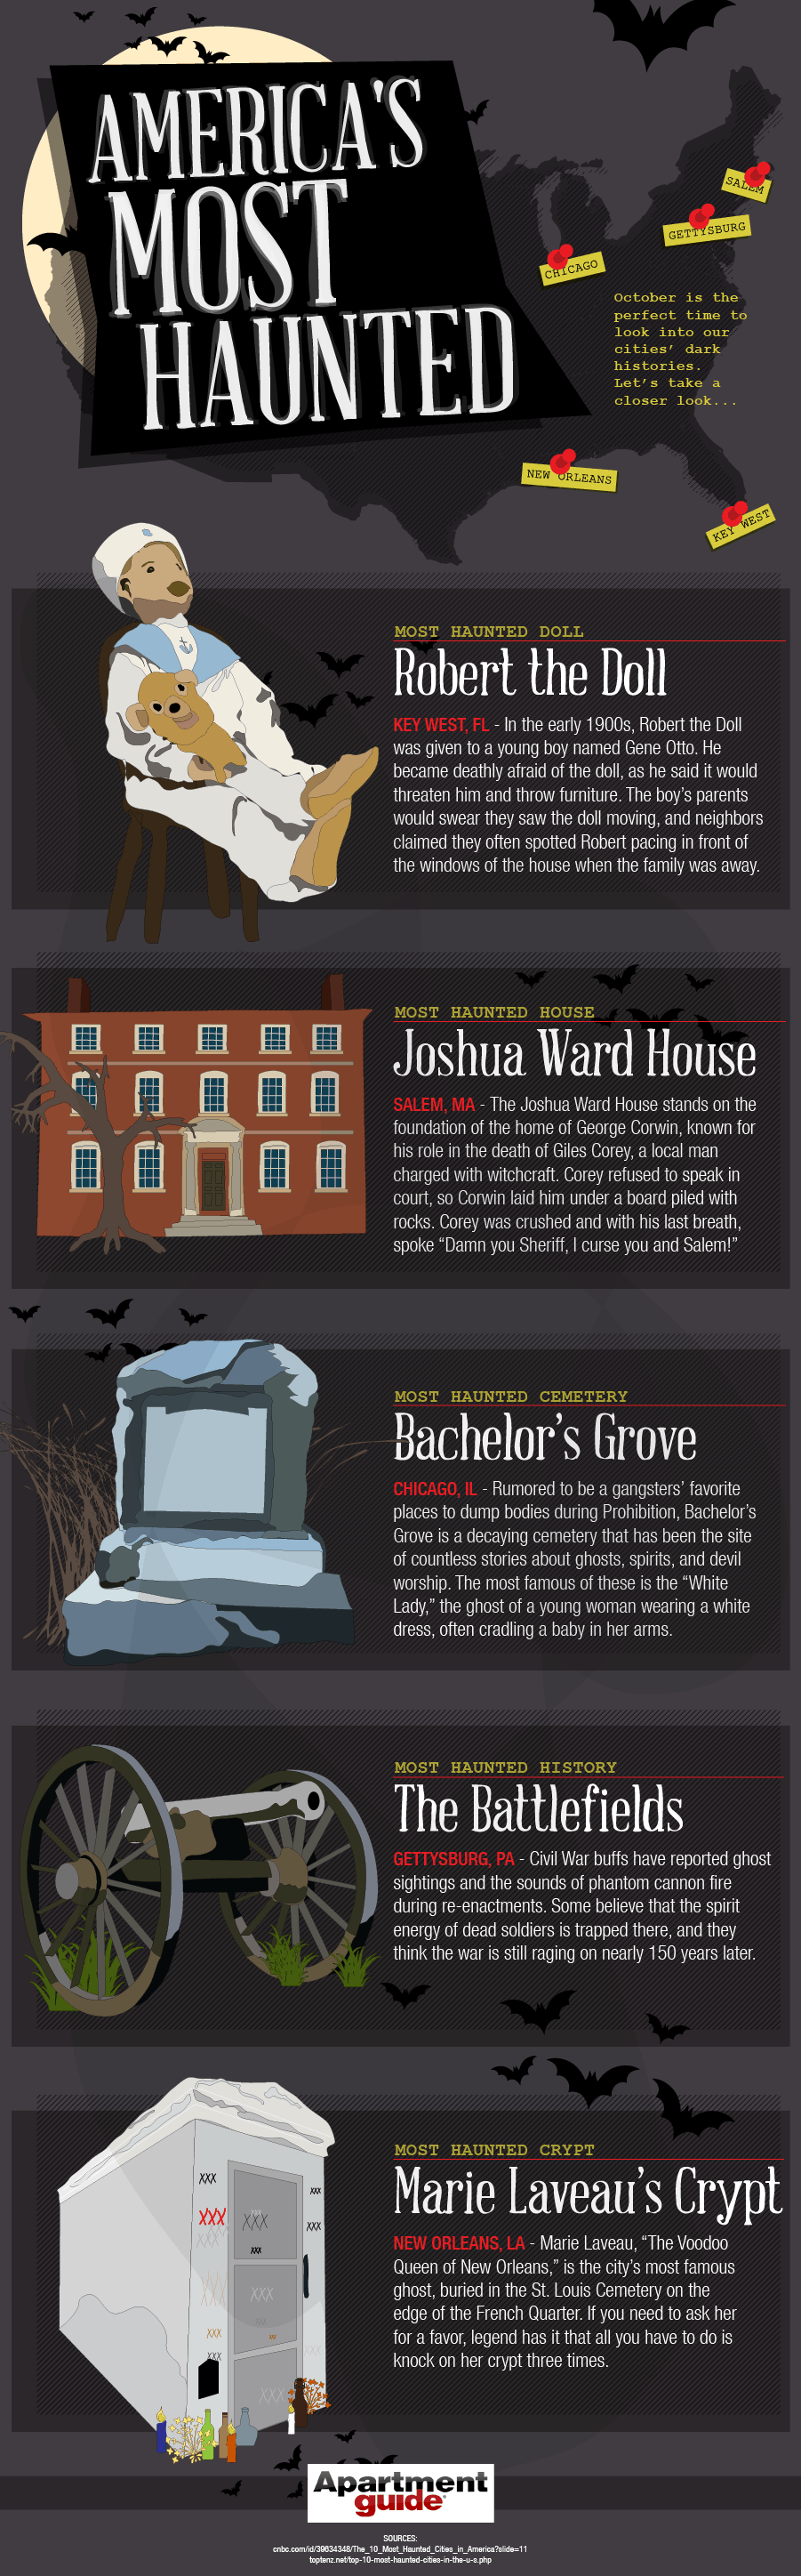 apartment-guide-haunted-cities